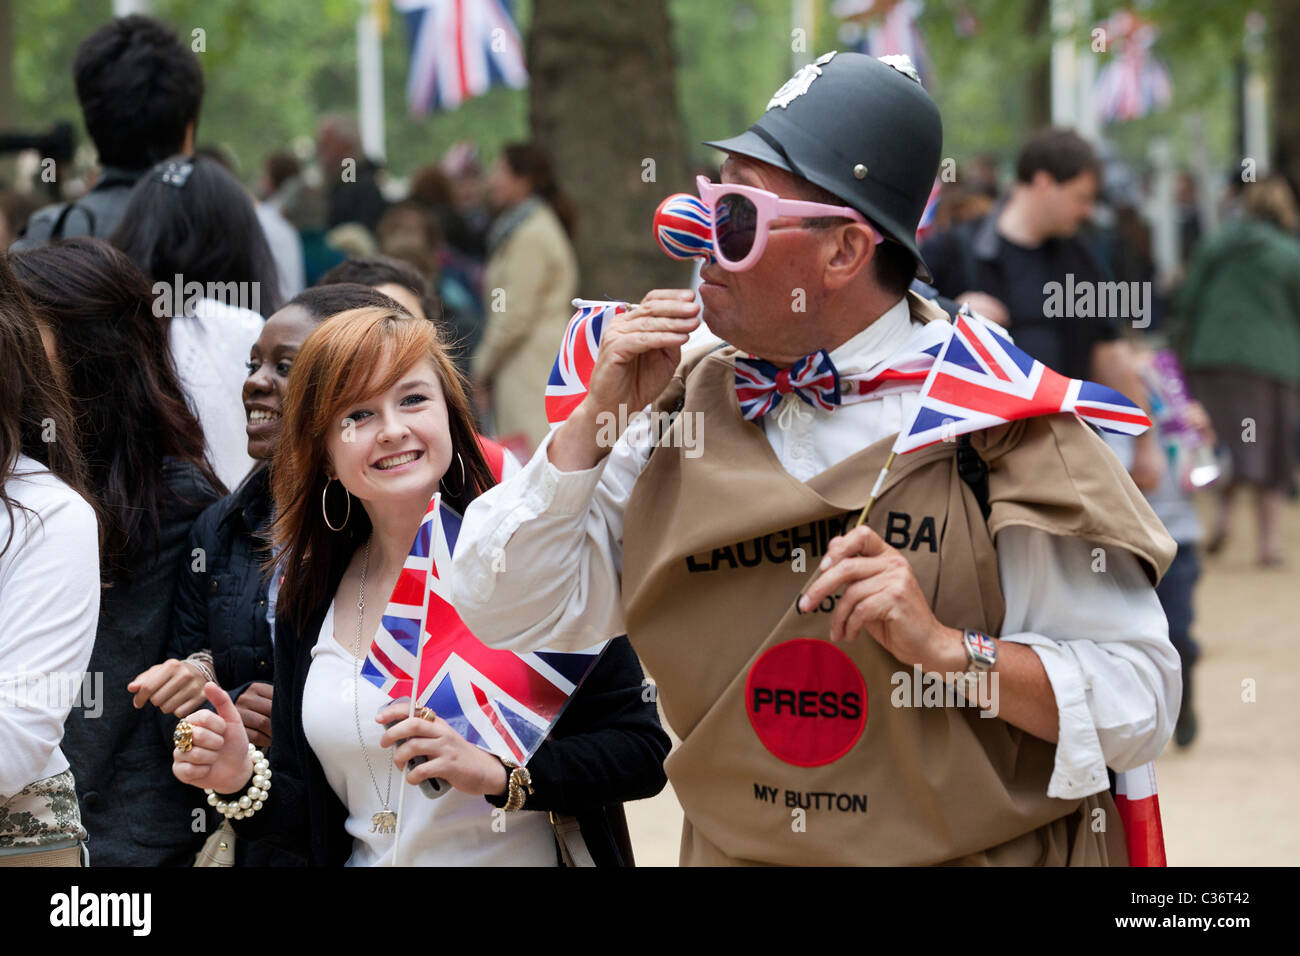 People in Hyde Park/The Mall celebrating the wedding day of Prince William and Kate Middleton in 2011 Stock Photo